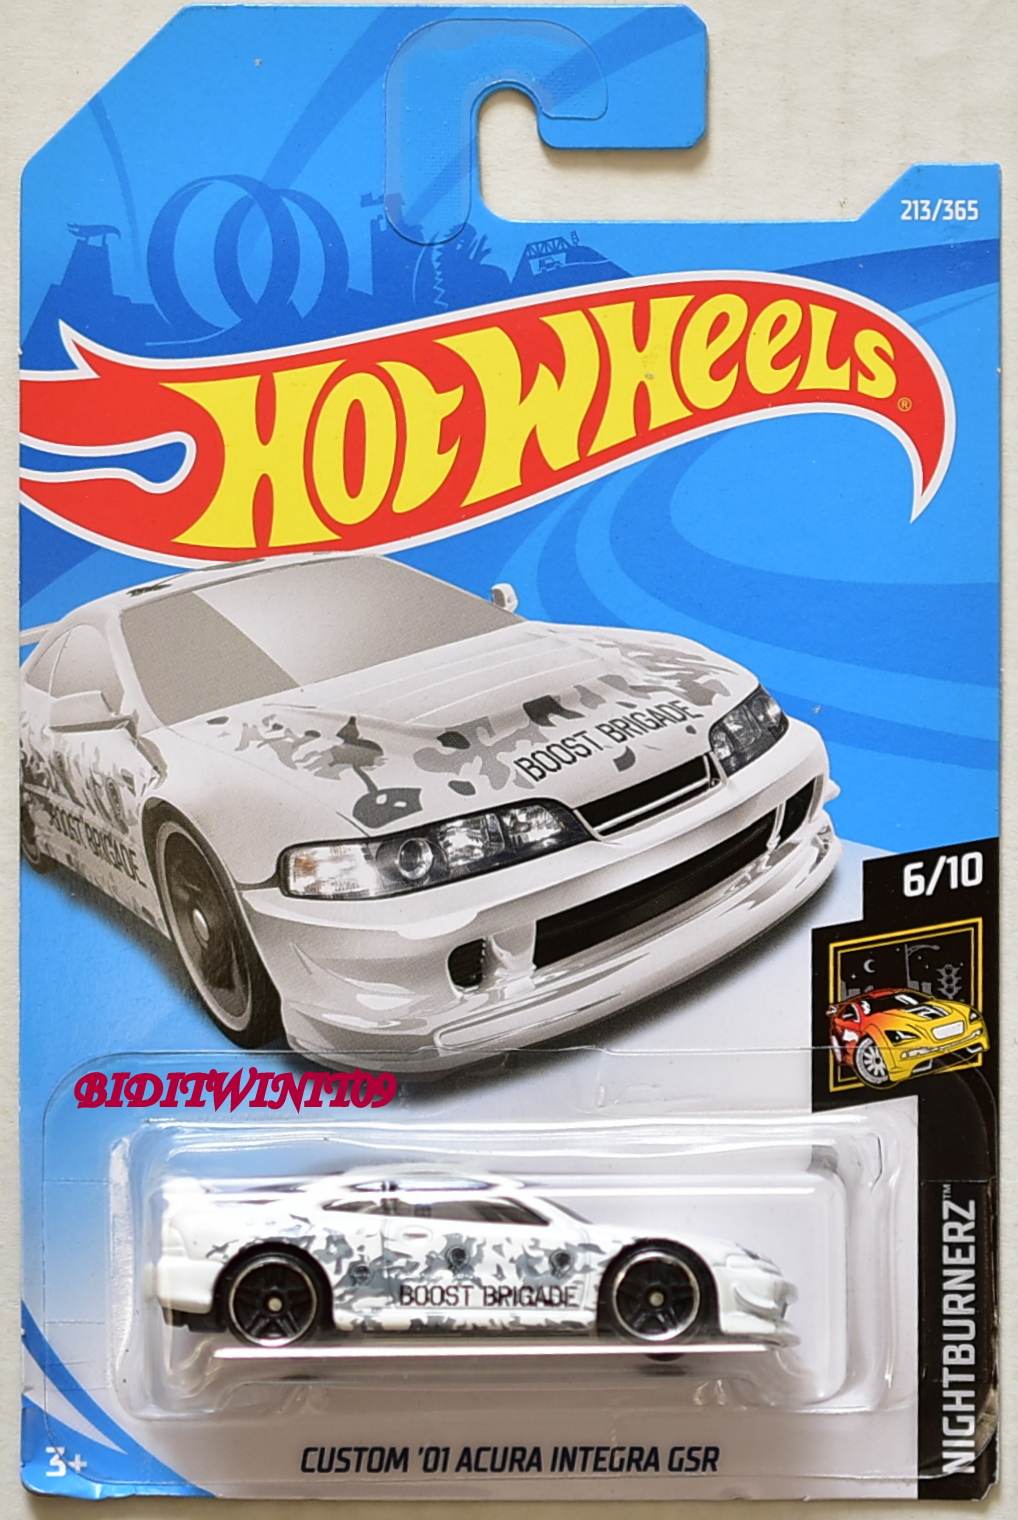 Hot Wheels 2018 Nightburnerz Custom 01 Acura Integra Gsr White 0010333 1 81 Biditwinit09 Com Classic Colections